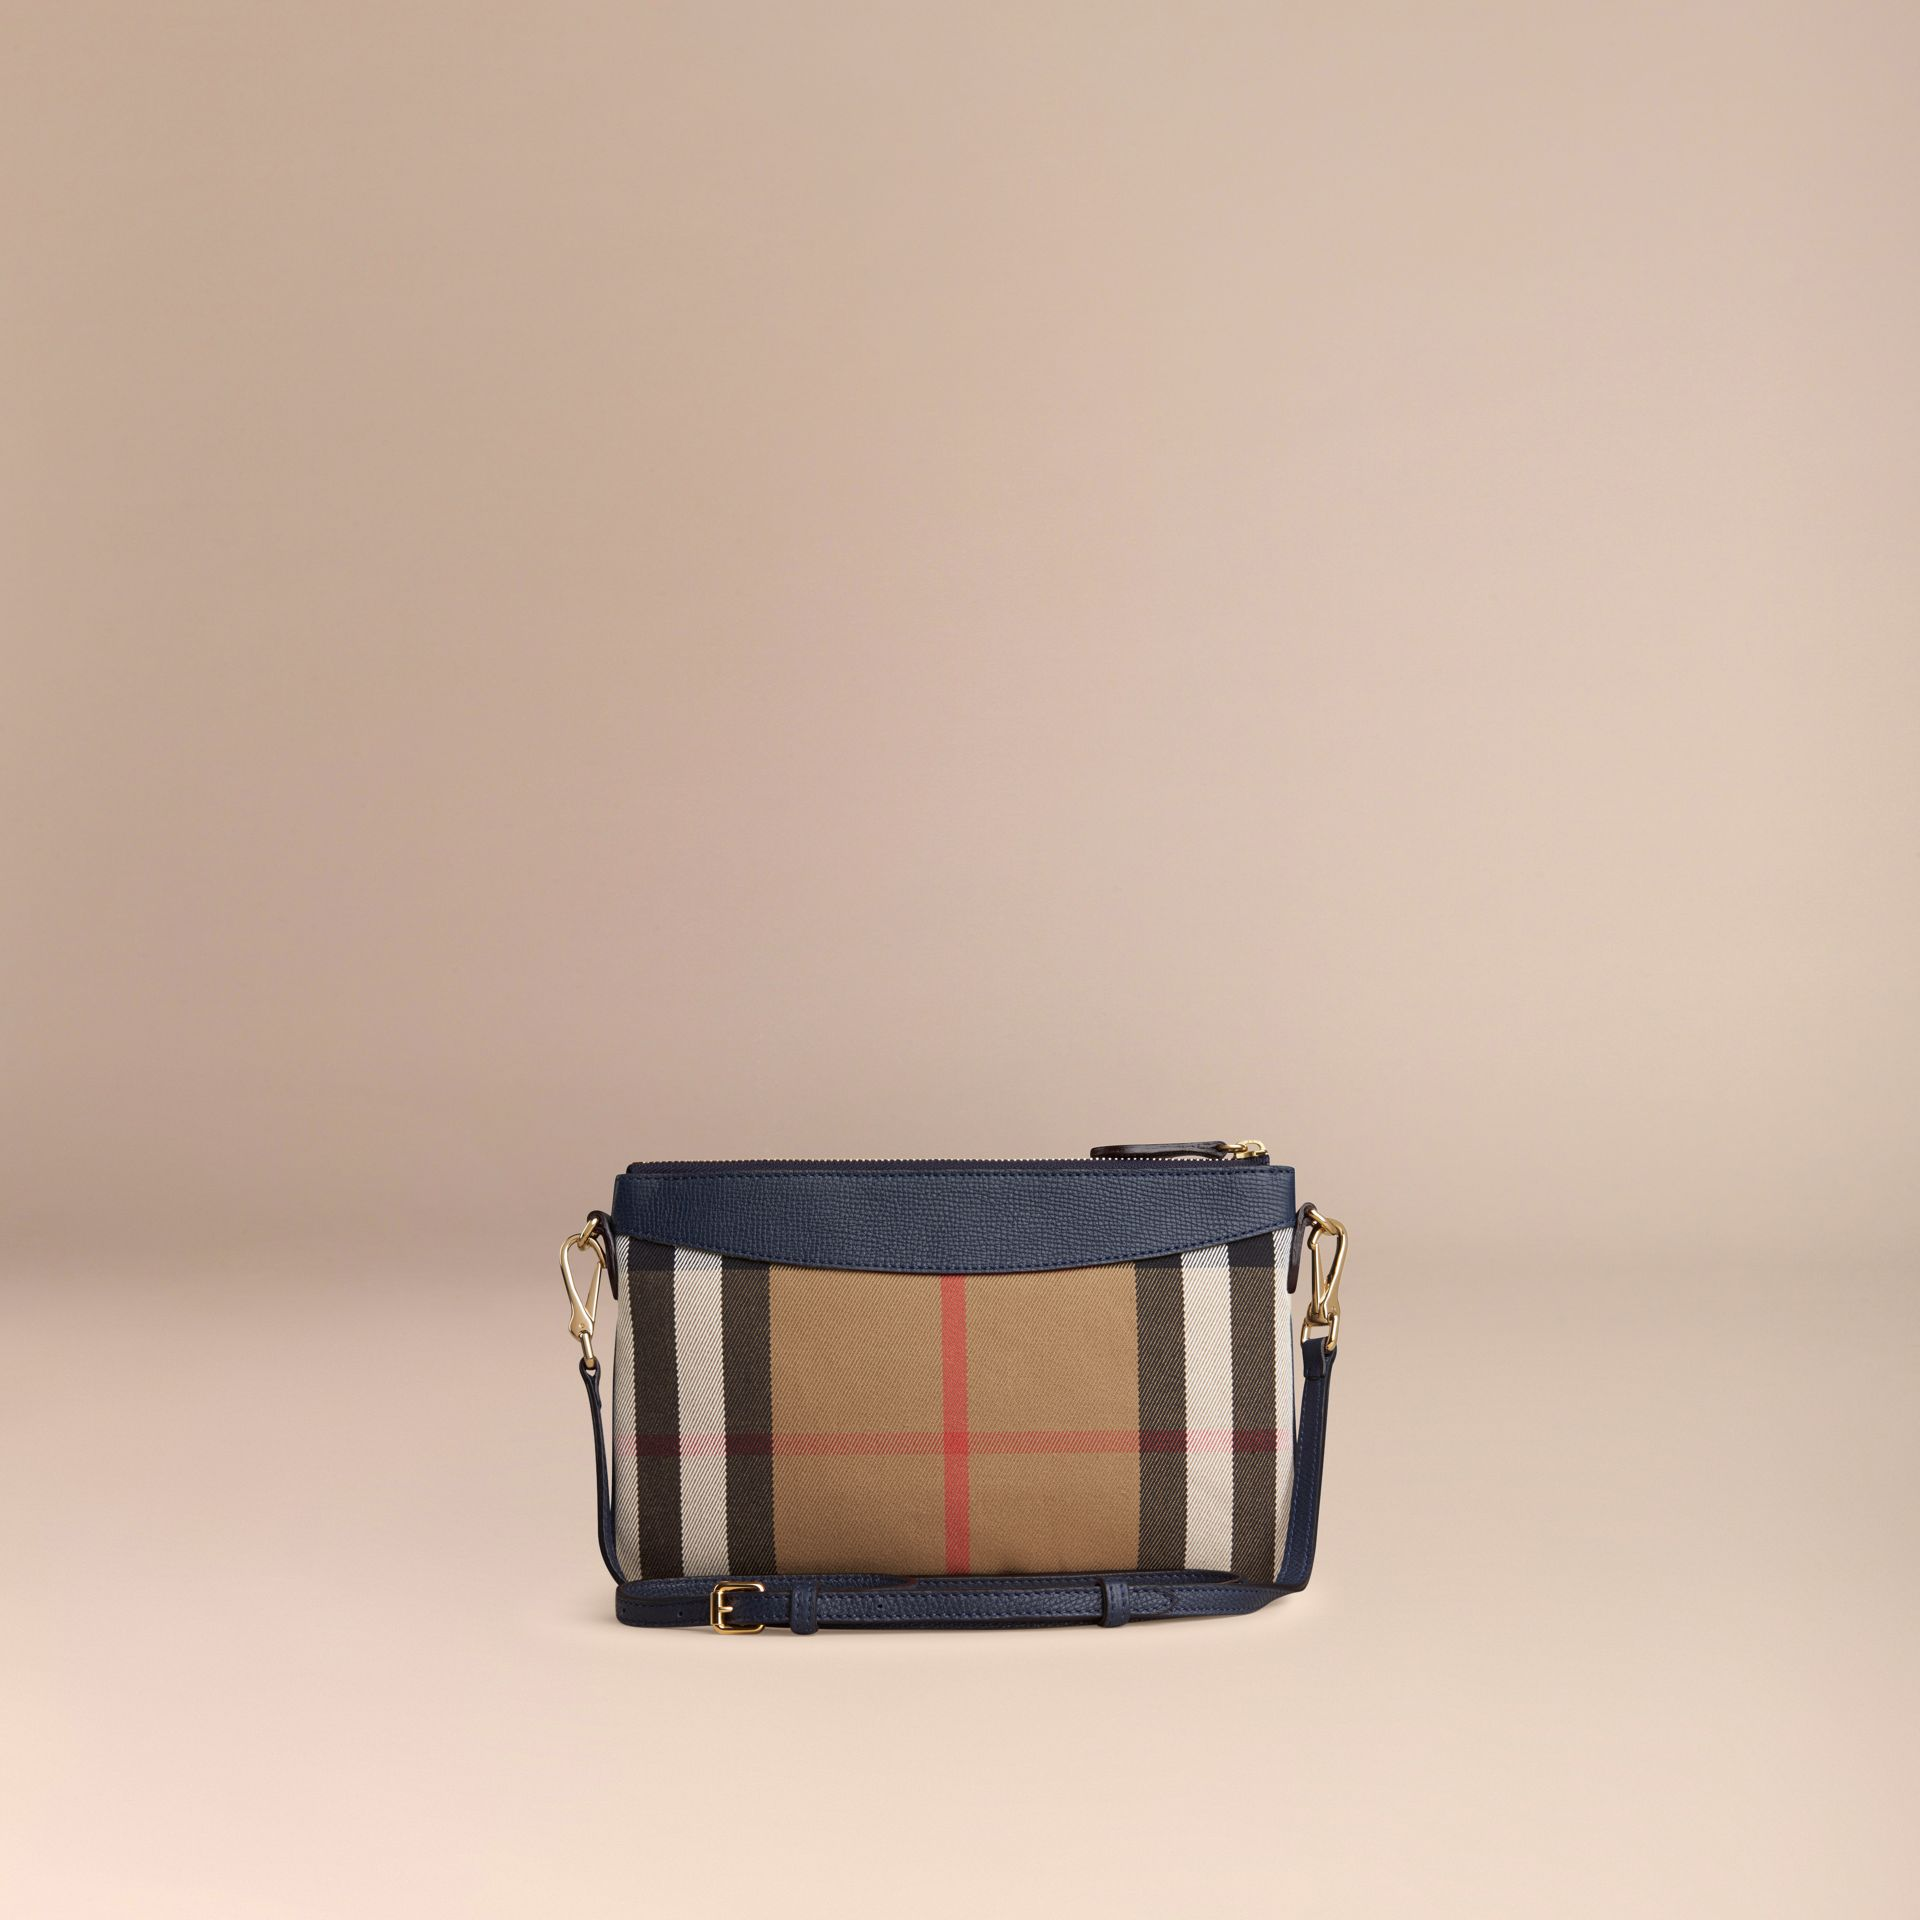 House Check and Leather Clutch Bag in Ink Blue - Women | Burberry - gallery image 4